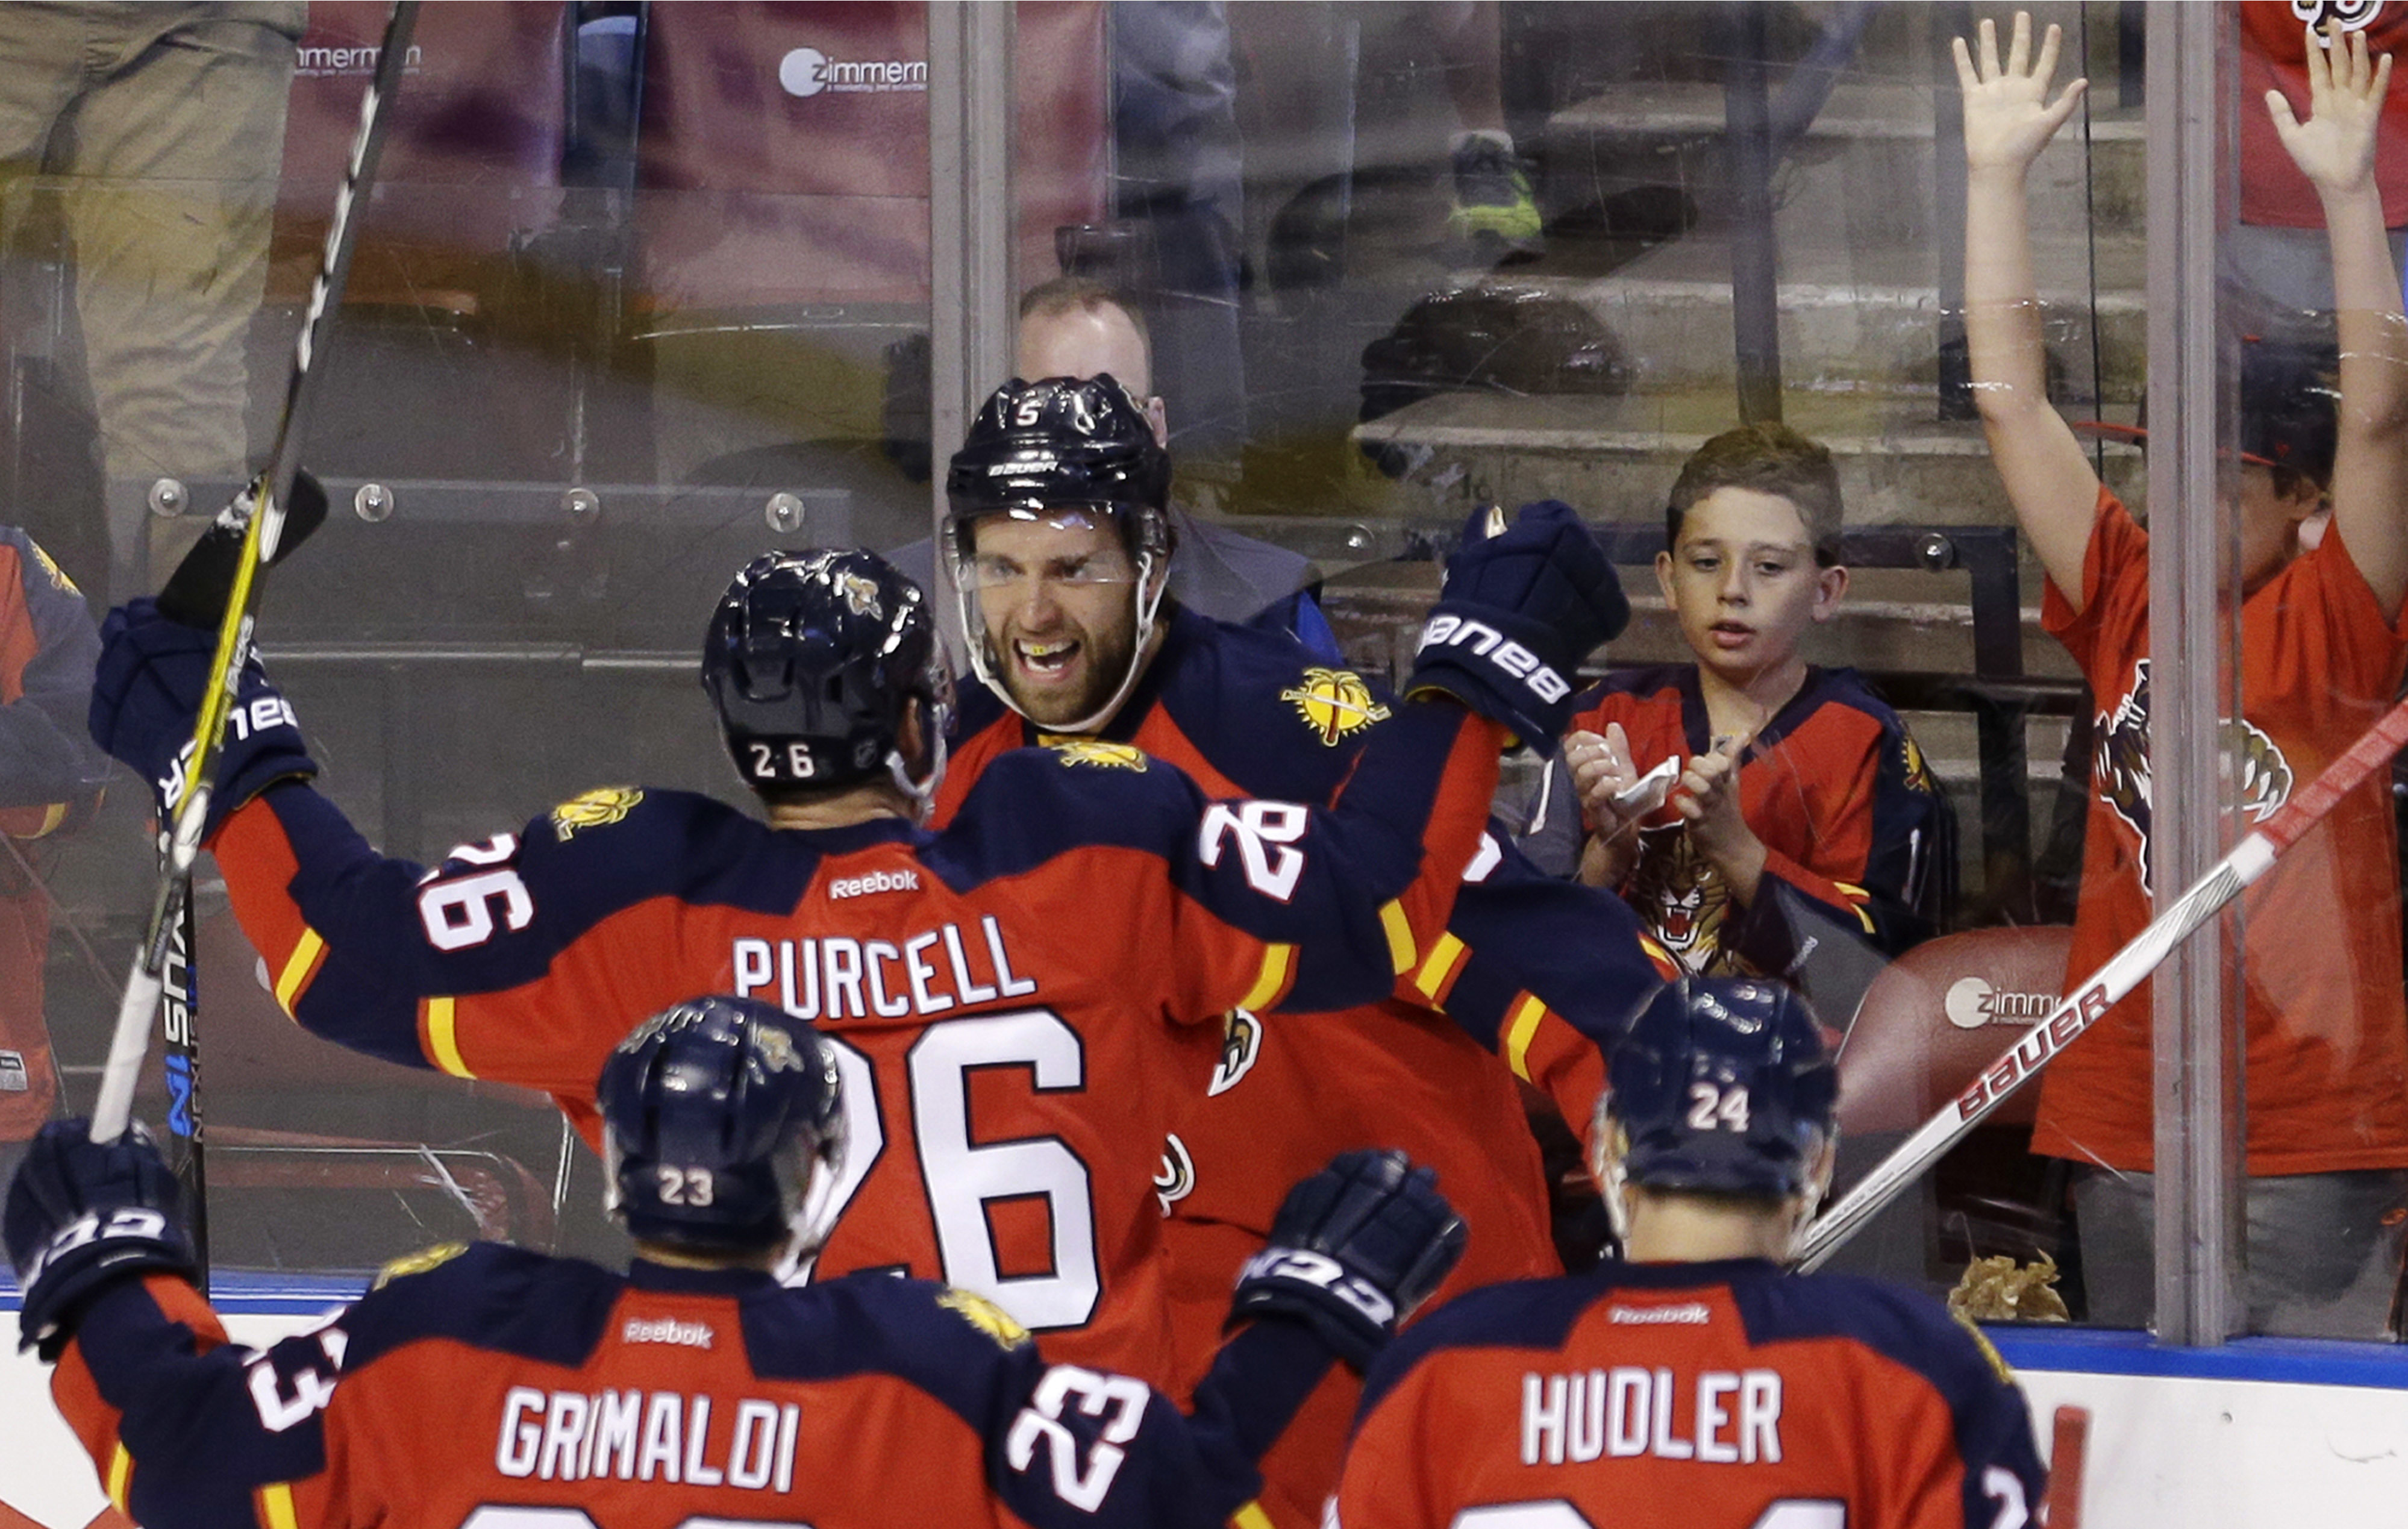 Florida Panthers defenseman Aaron Ekblad (5) is congratulated by teammates after scoring a goal against the Carolina Hurricanes during the first period of an NHL hockey game, Saturday, April 9, 2016, in Sunrise, Fla. (AP Photo/Alan Diaz)